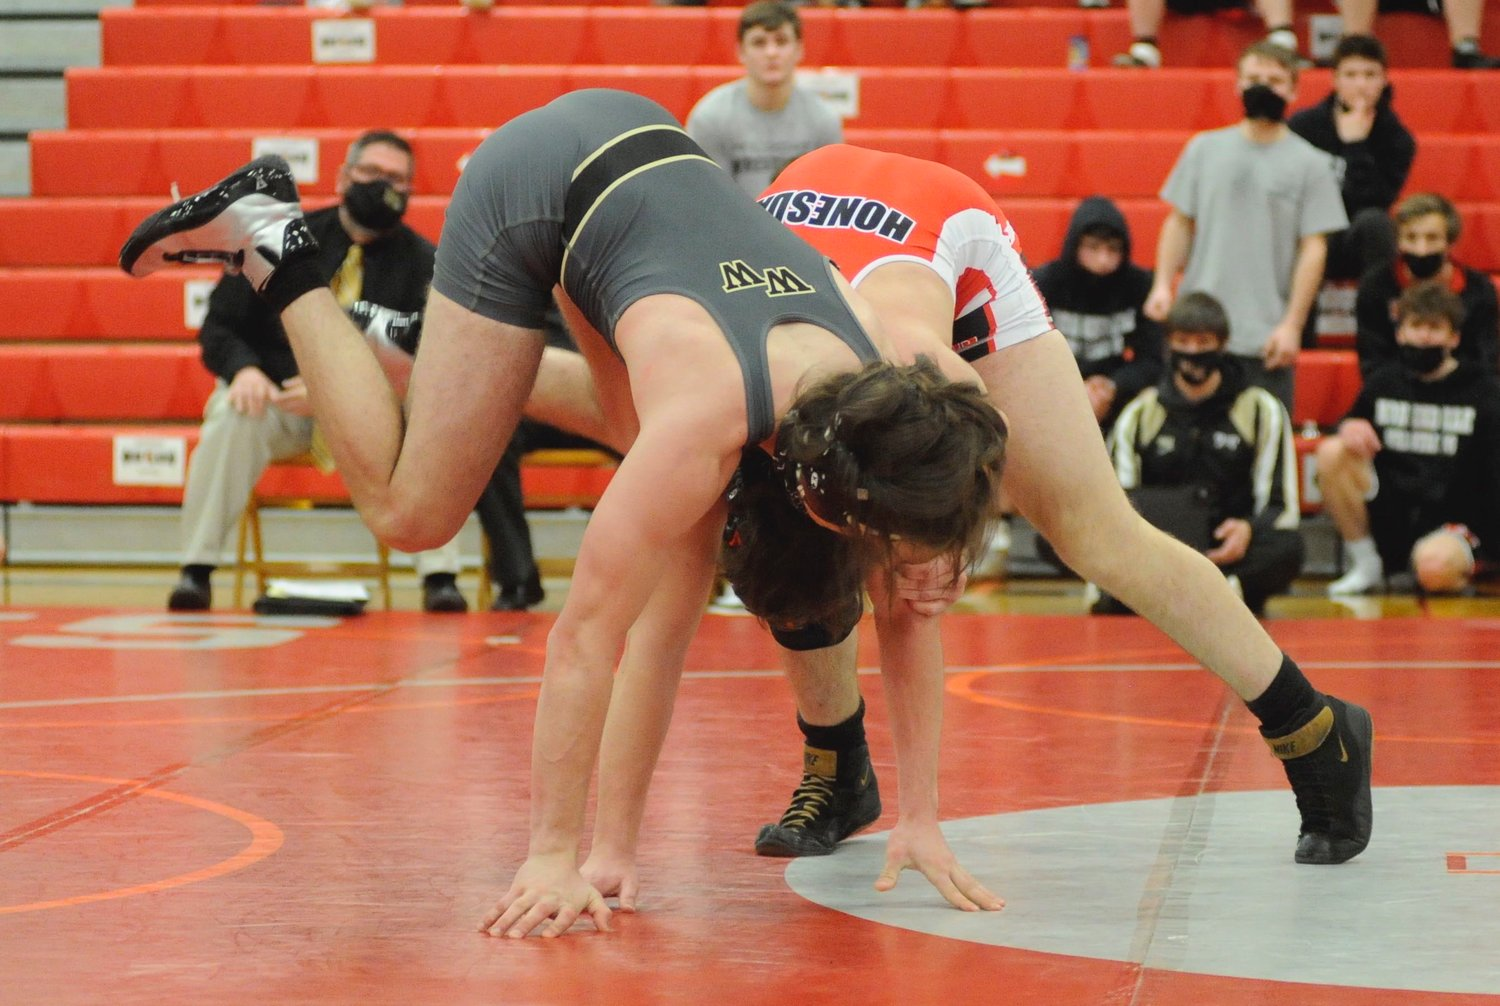 "Honesdale's Tim Dailey won by a 11-7 decision over Kasen Taylor of Western Wayne on Friday, January 29 at ""The Home of the Hornets."" The Hornets posted a 50-21 victory in their first game of the season."